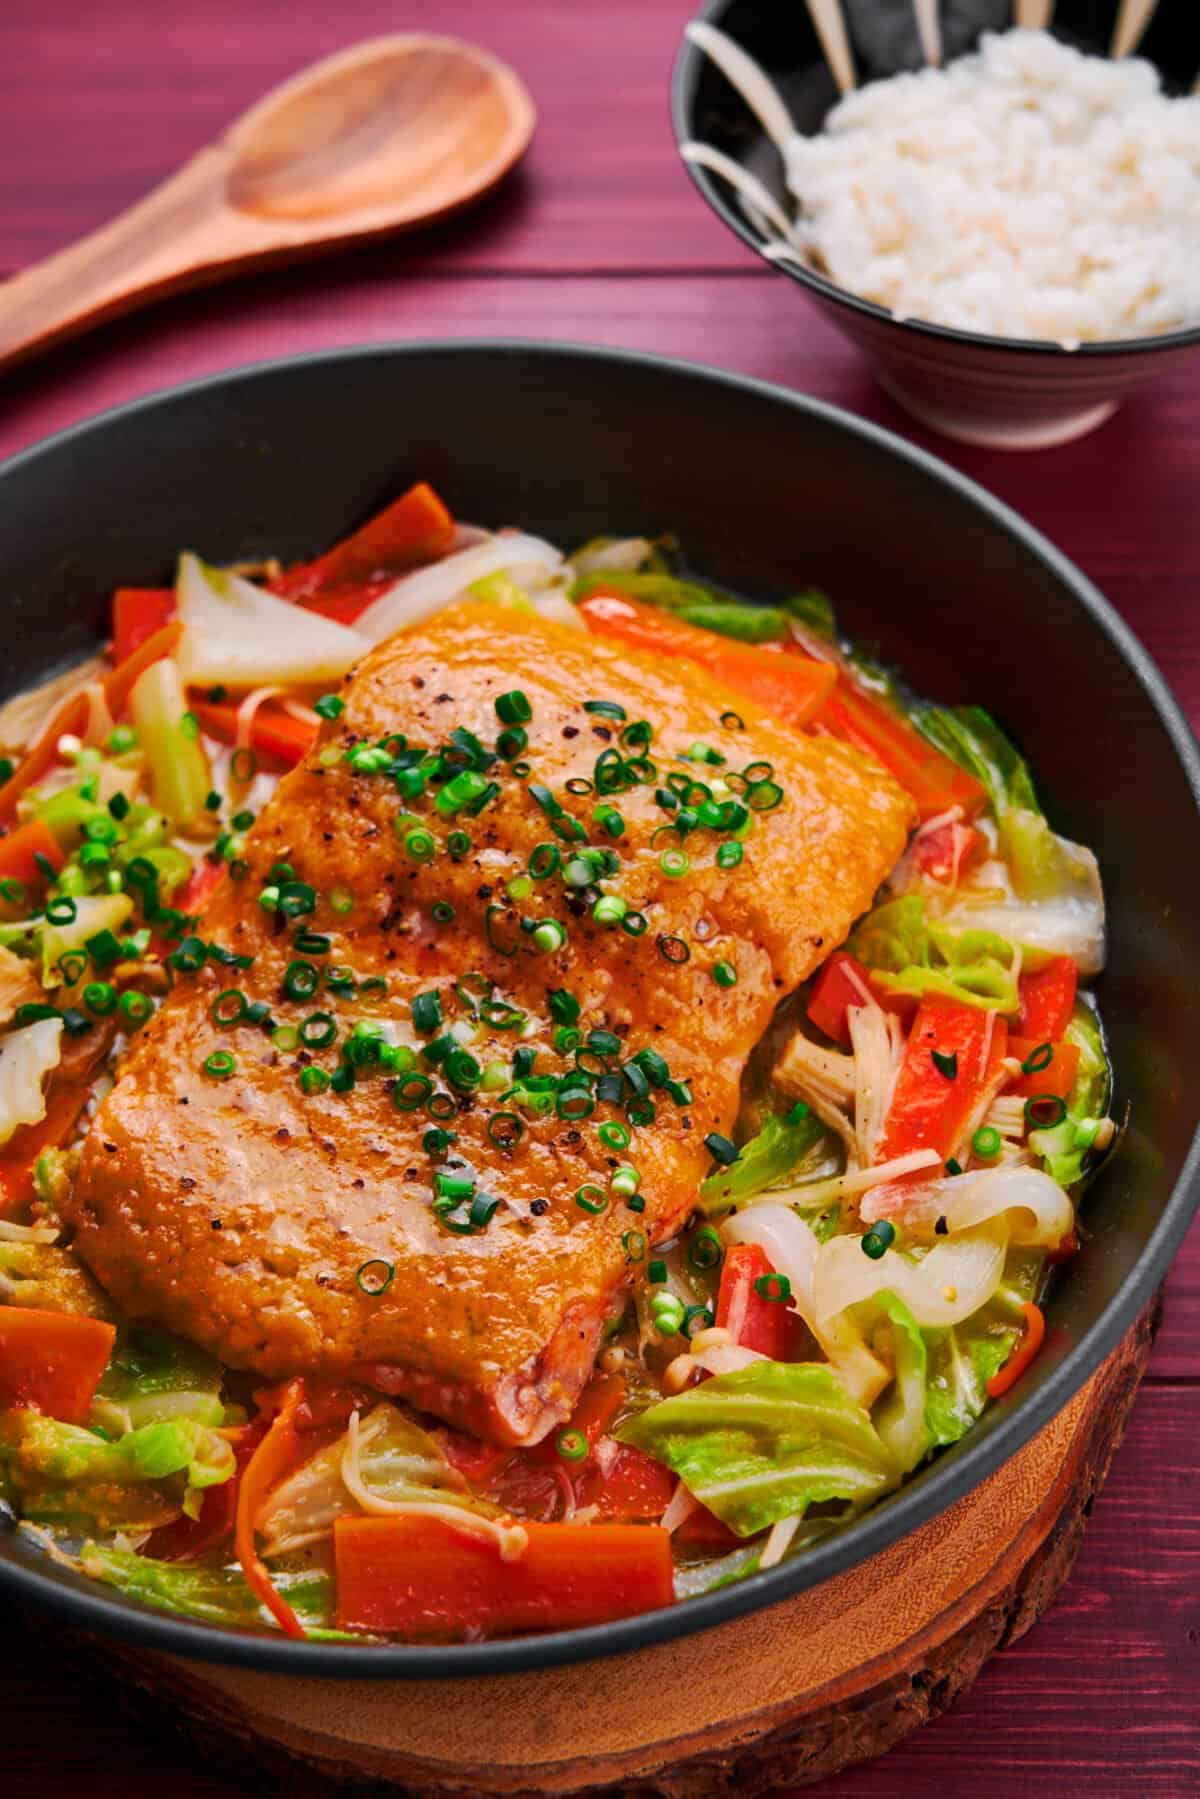 Melt-in-your-mouth salmon steamed on a bed of cabbage, carrots, and mushrooms with miso butter sauce.